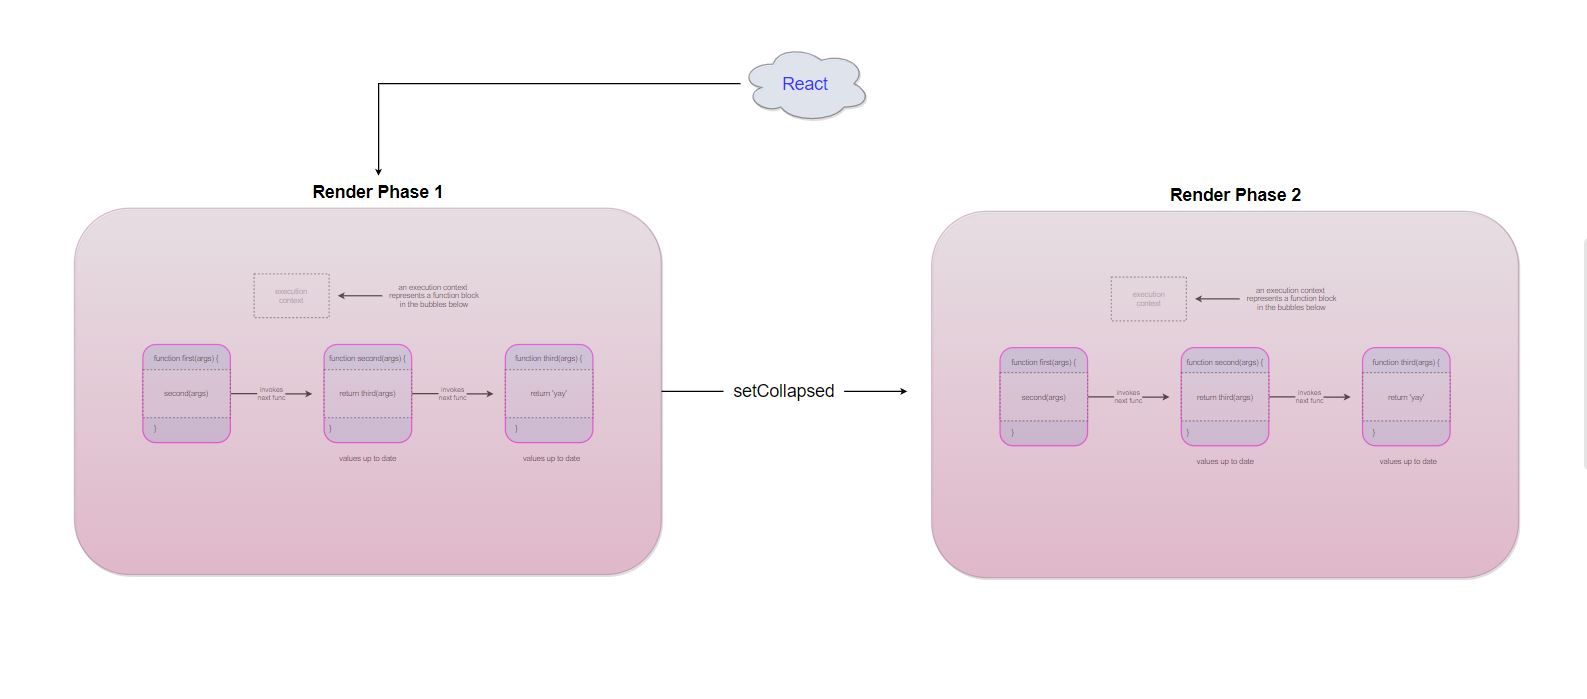 react-render-phase-reconciliation-flow-chart